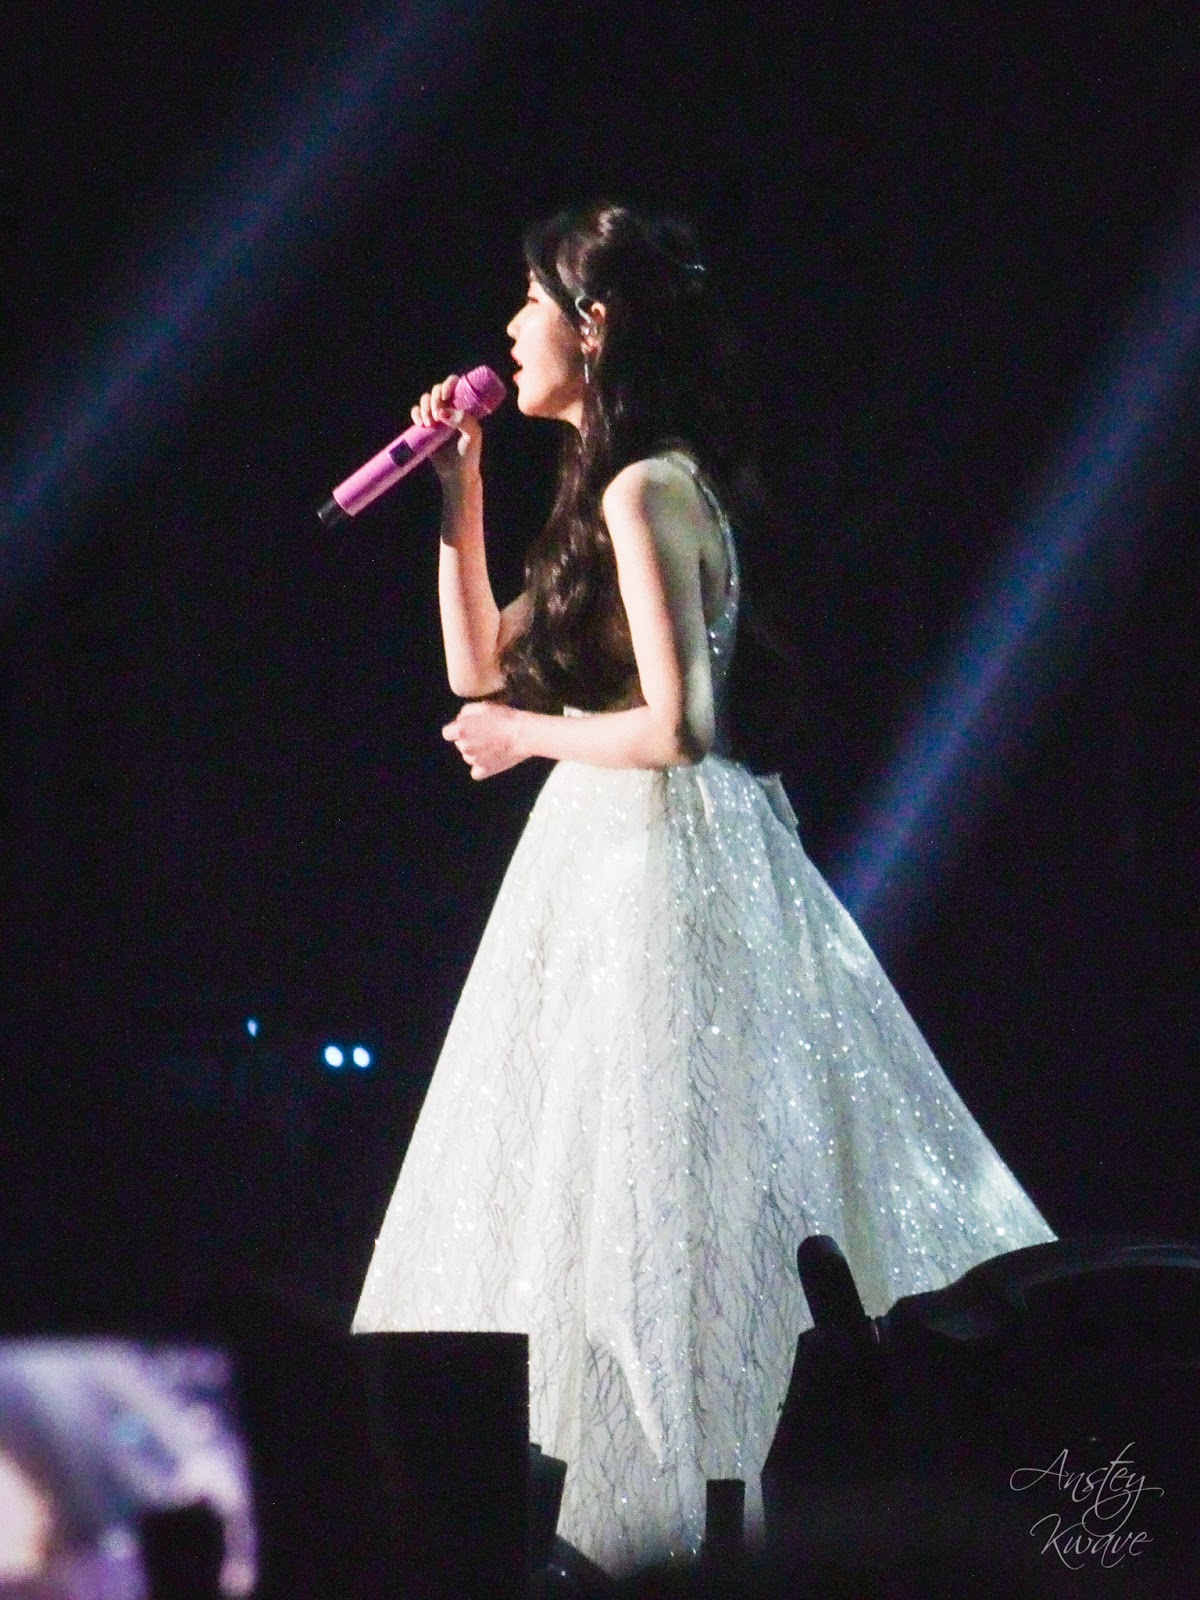 Famous Korean k-pop singer IU singing on stage at Melon Music Awards (MMA) 2017 in Seoul, South Korea